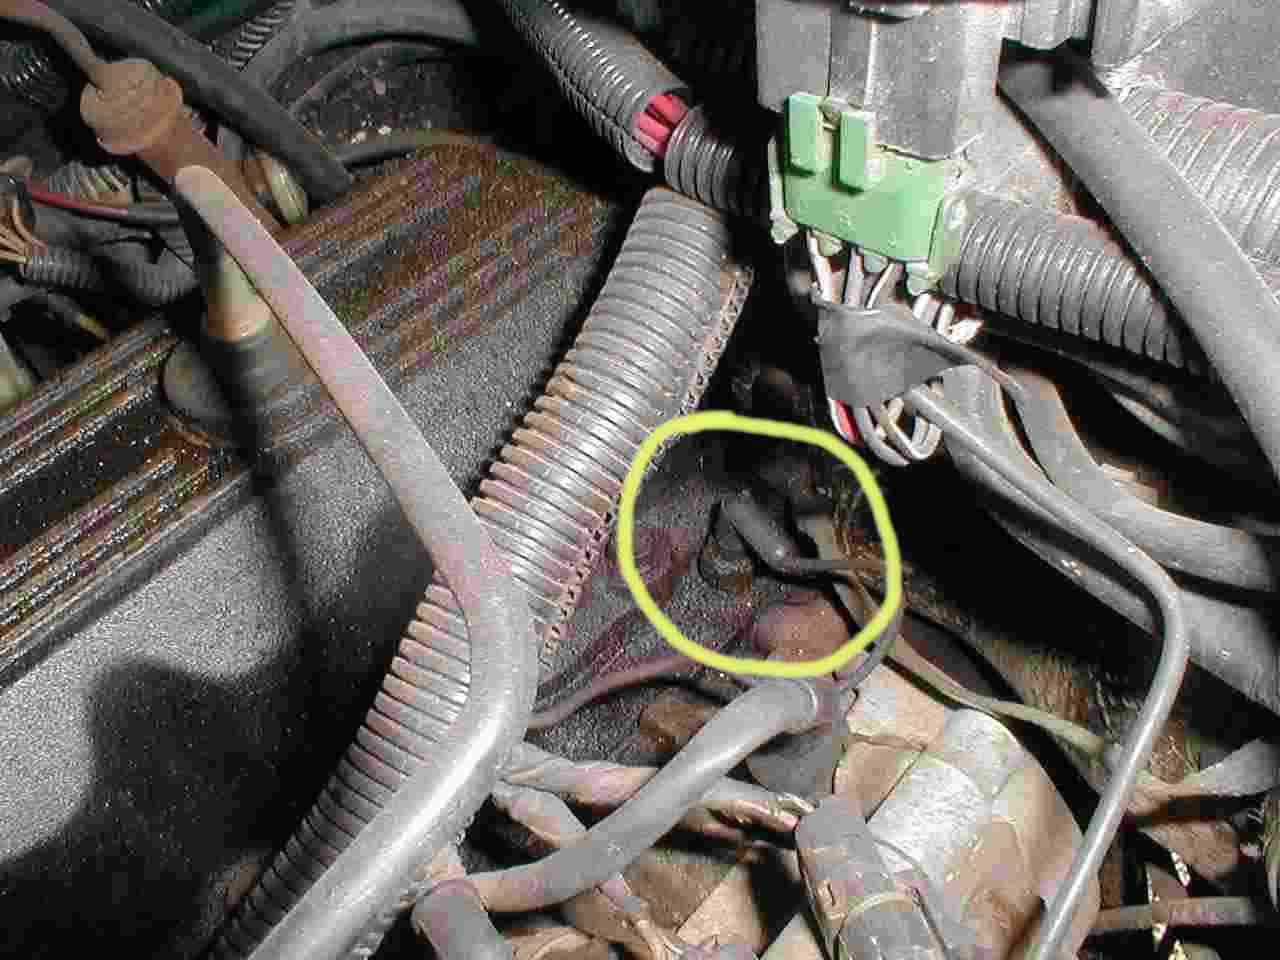 Jeep Cherokee Engines Renix Non Ho Engine Sensor Diagnostics 1987 Grand Wagoneer Wiring Diagram Almost Sensors